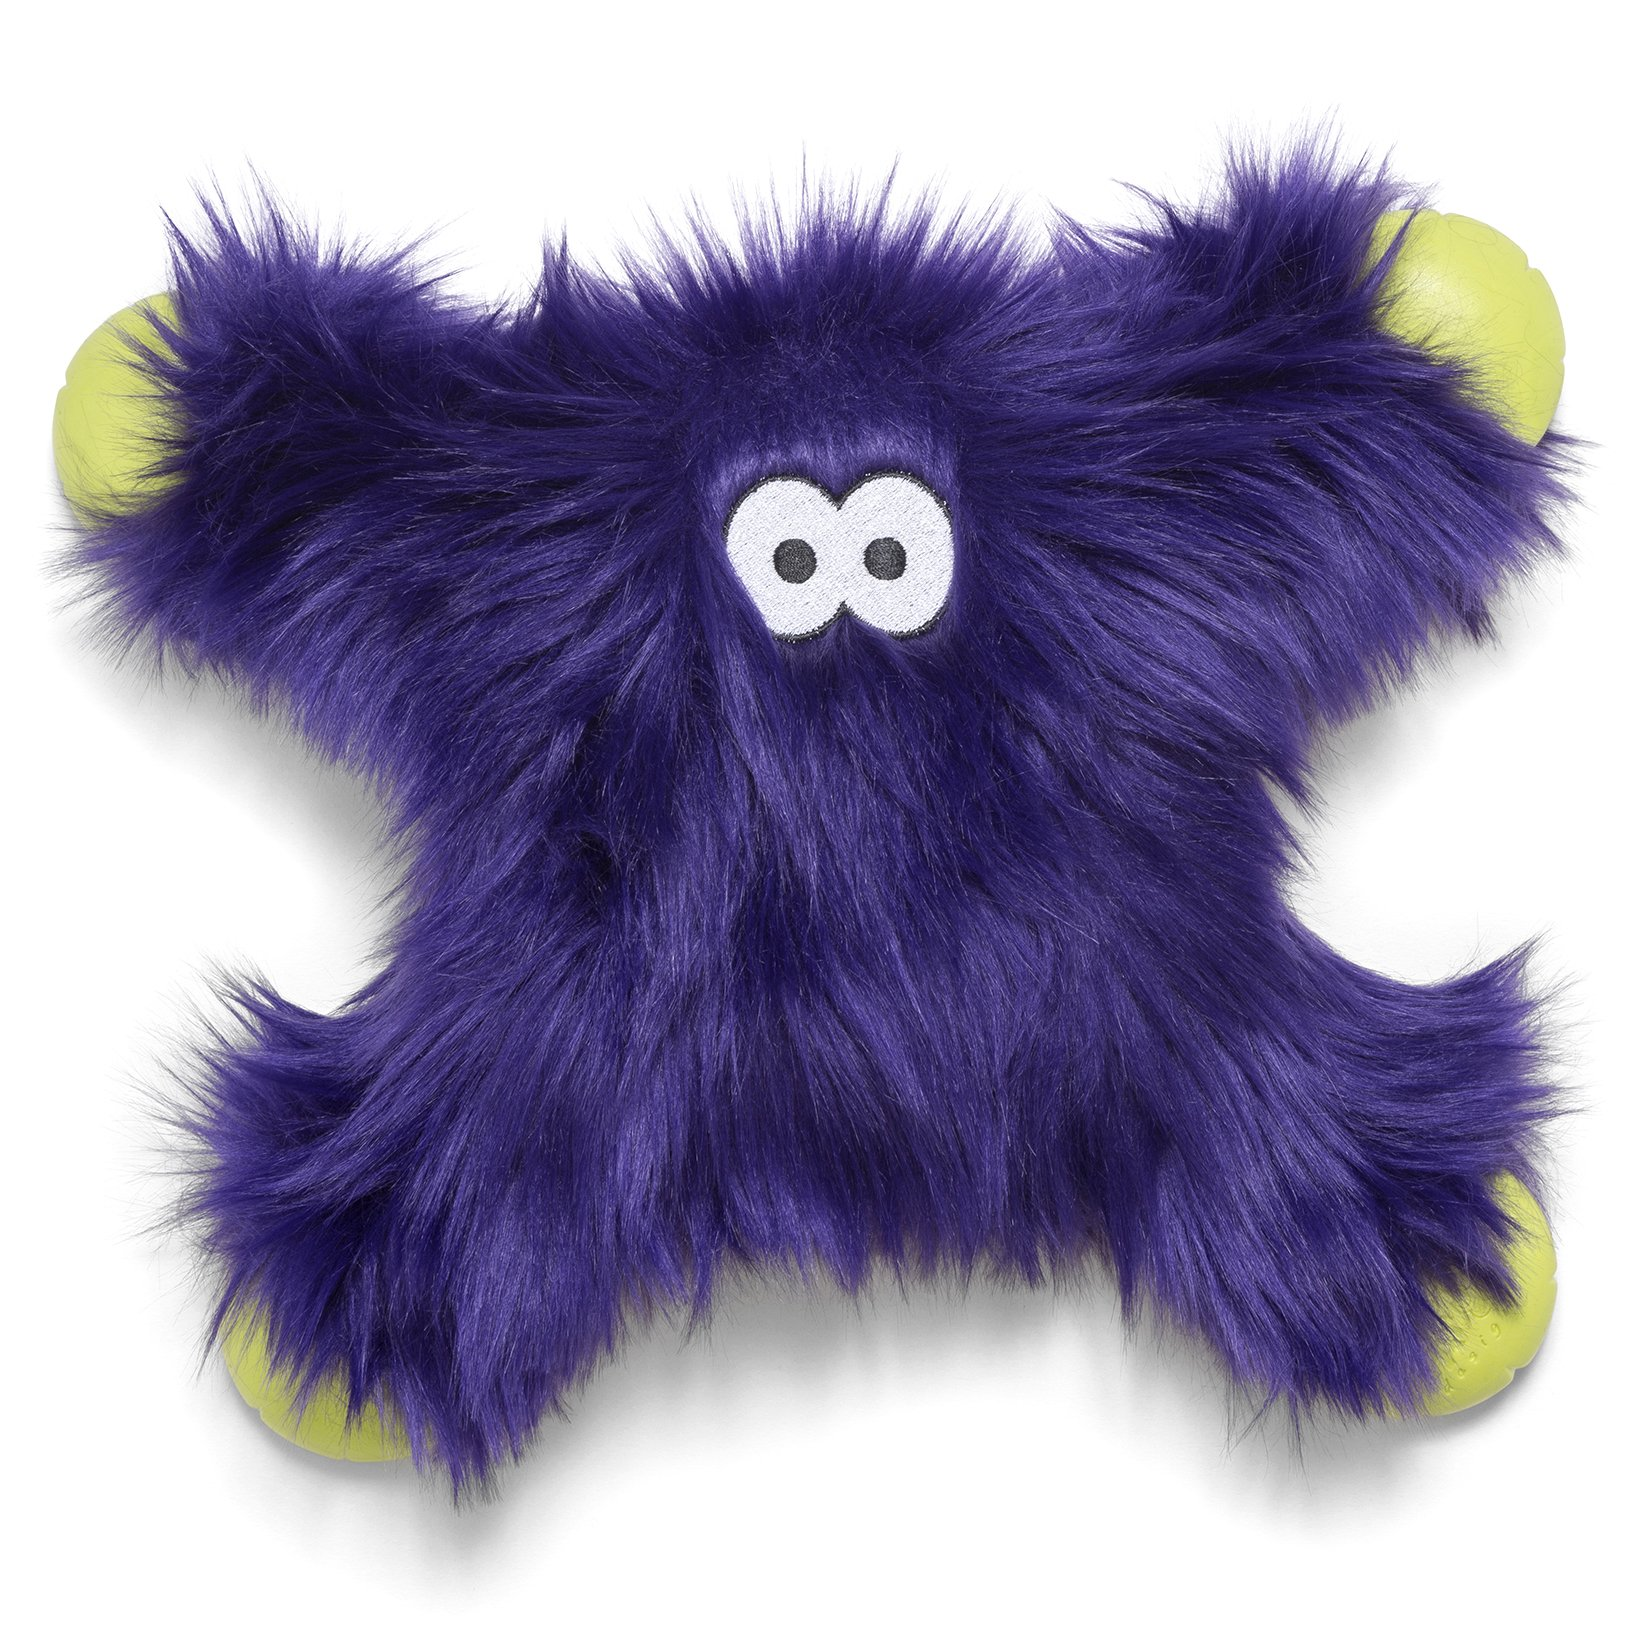 West Paw Rowdies with HardyTex and Zogoflex, Durable Plush Dog Toy for Medium to Large Dogs, Lincoln, Purple Fur by West Paw Design